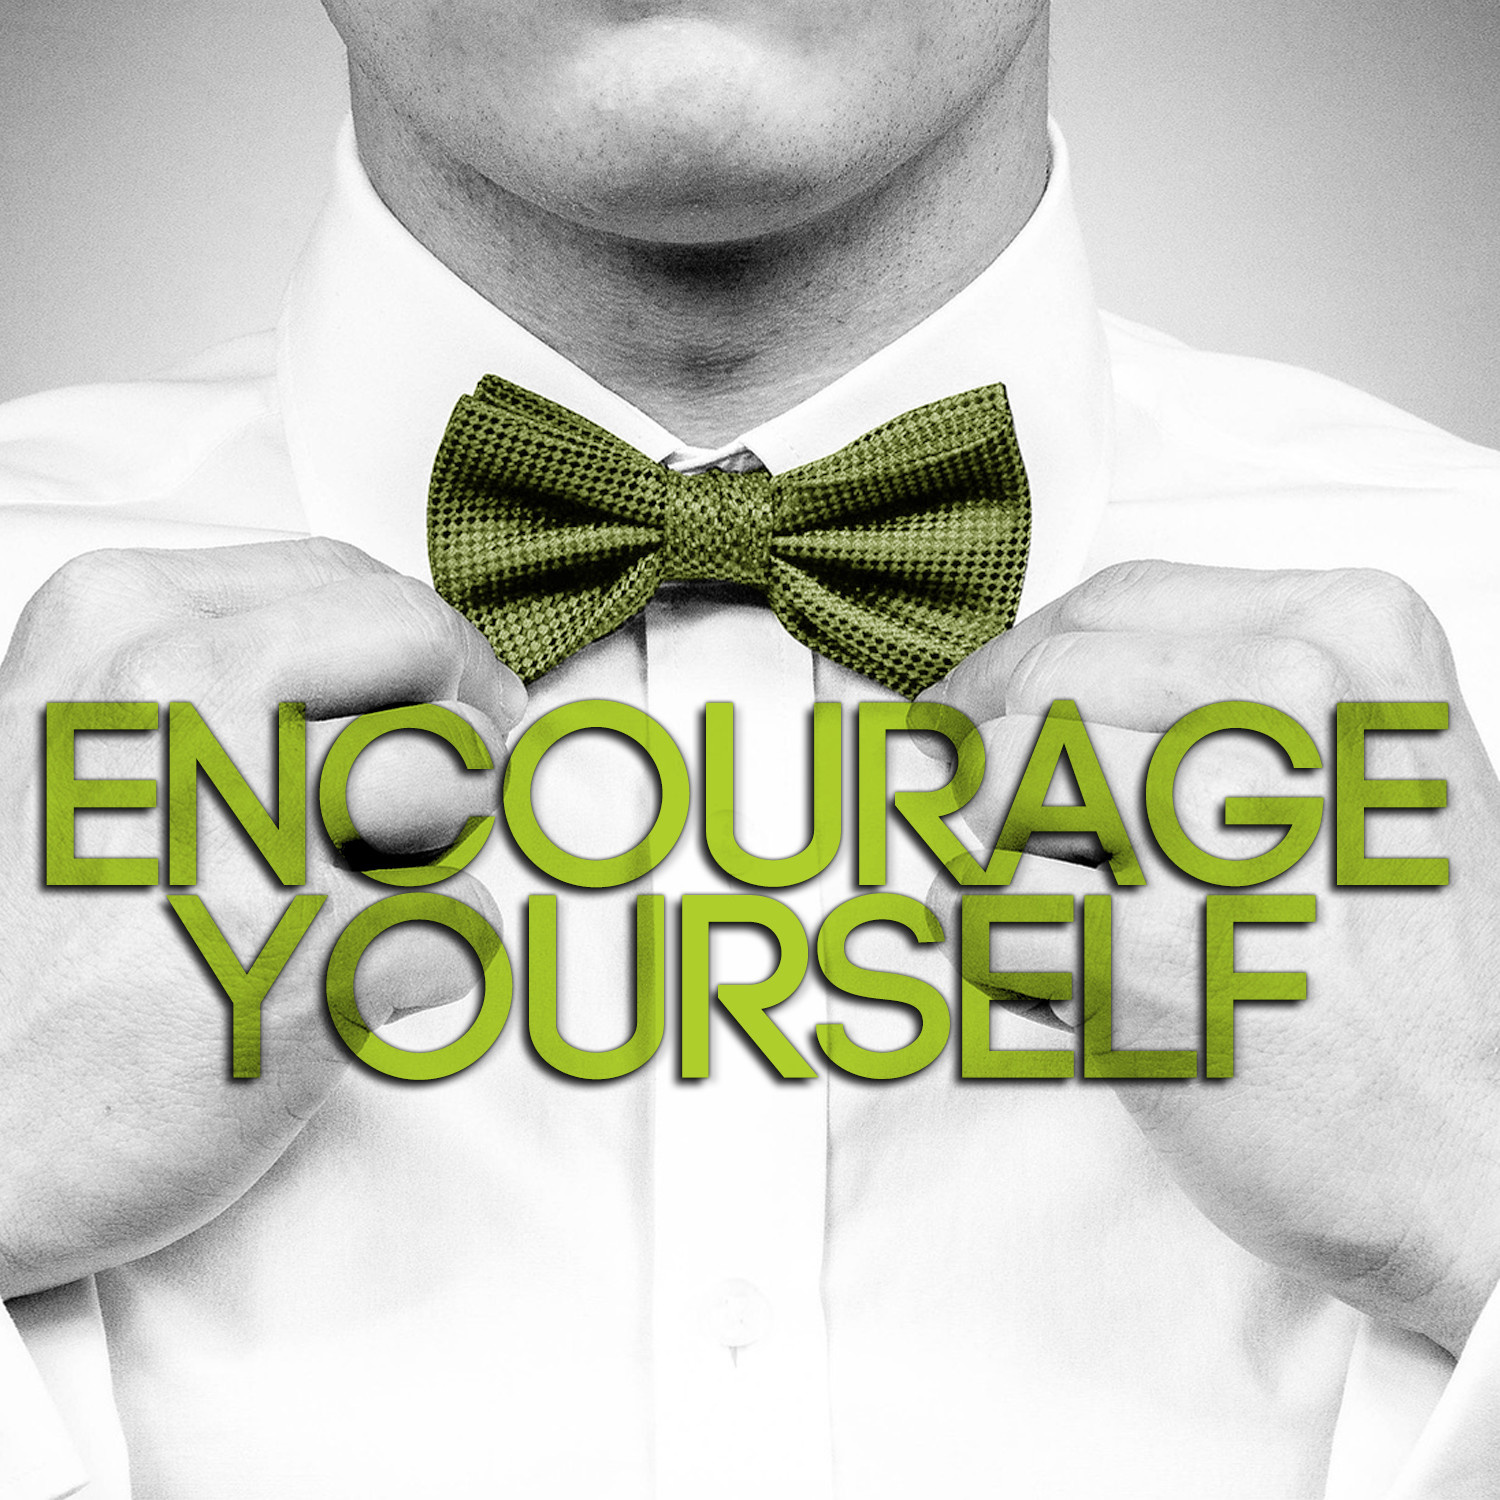 120 - Encourage Yourself! By Pastor Jeff Wickwire | LT38521-1